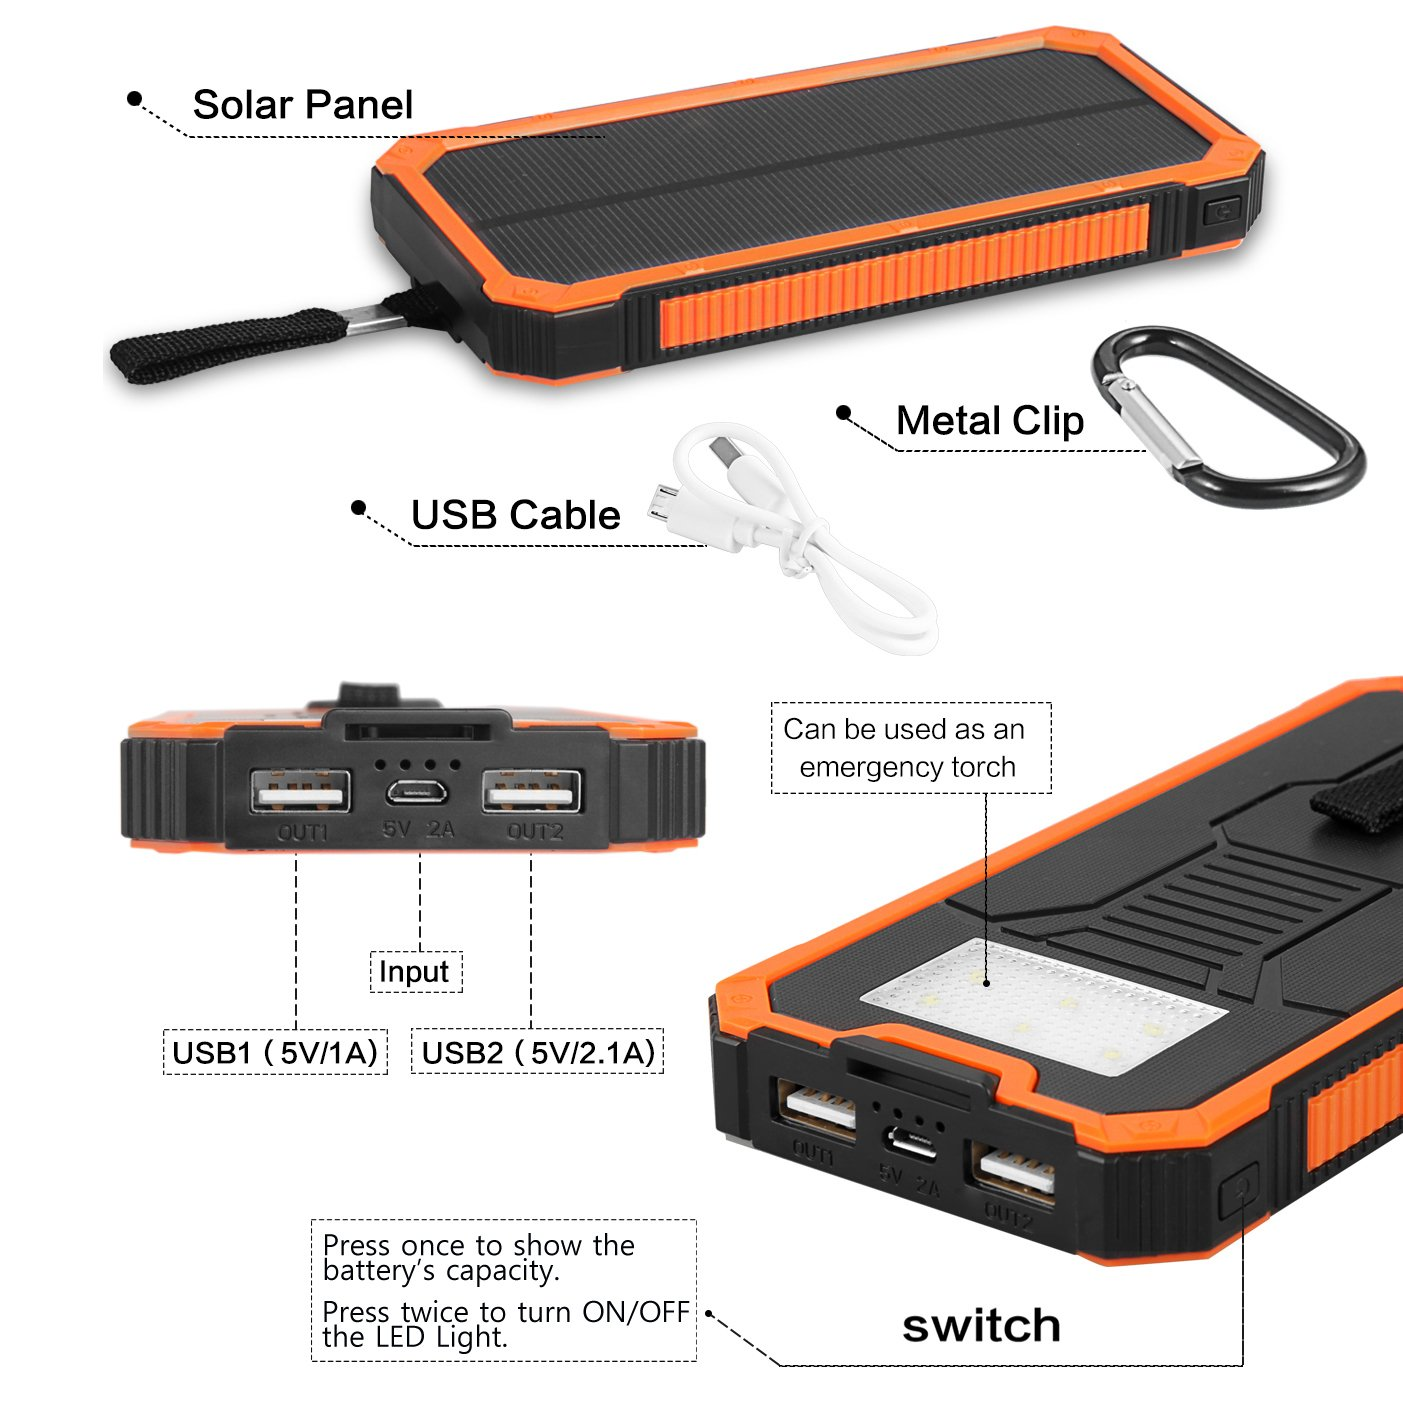 Solar Charger Friengood 15000mAh Portable Solar Power Bank Dual USB Ports Solar Phone Battery Charger with 6 LED Flashlight Light for iPhone, iPad, Samsung and More (Orange) by Friengood (Image #5)